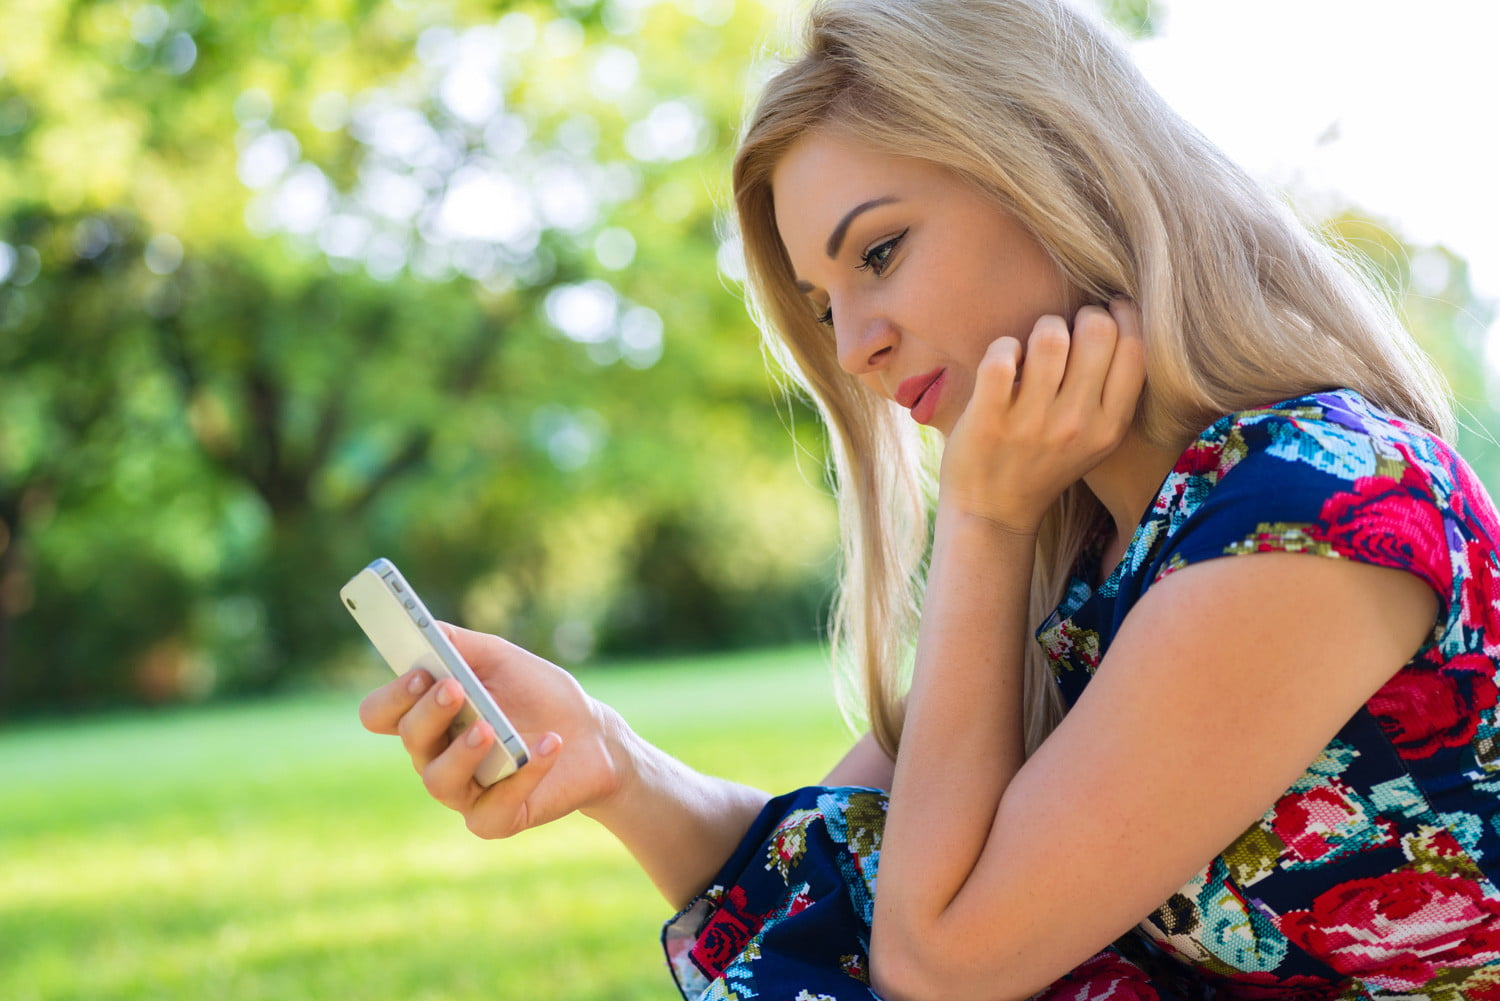 Flirty Text Messages To A Guy